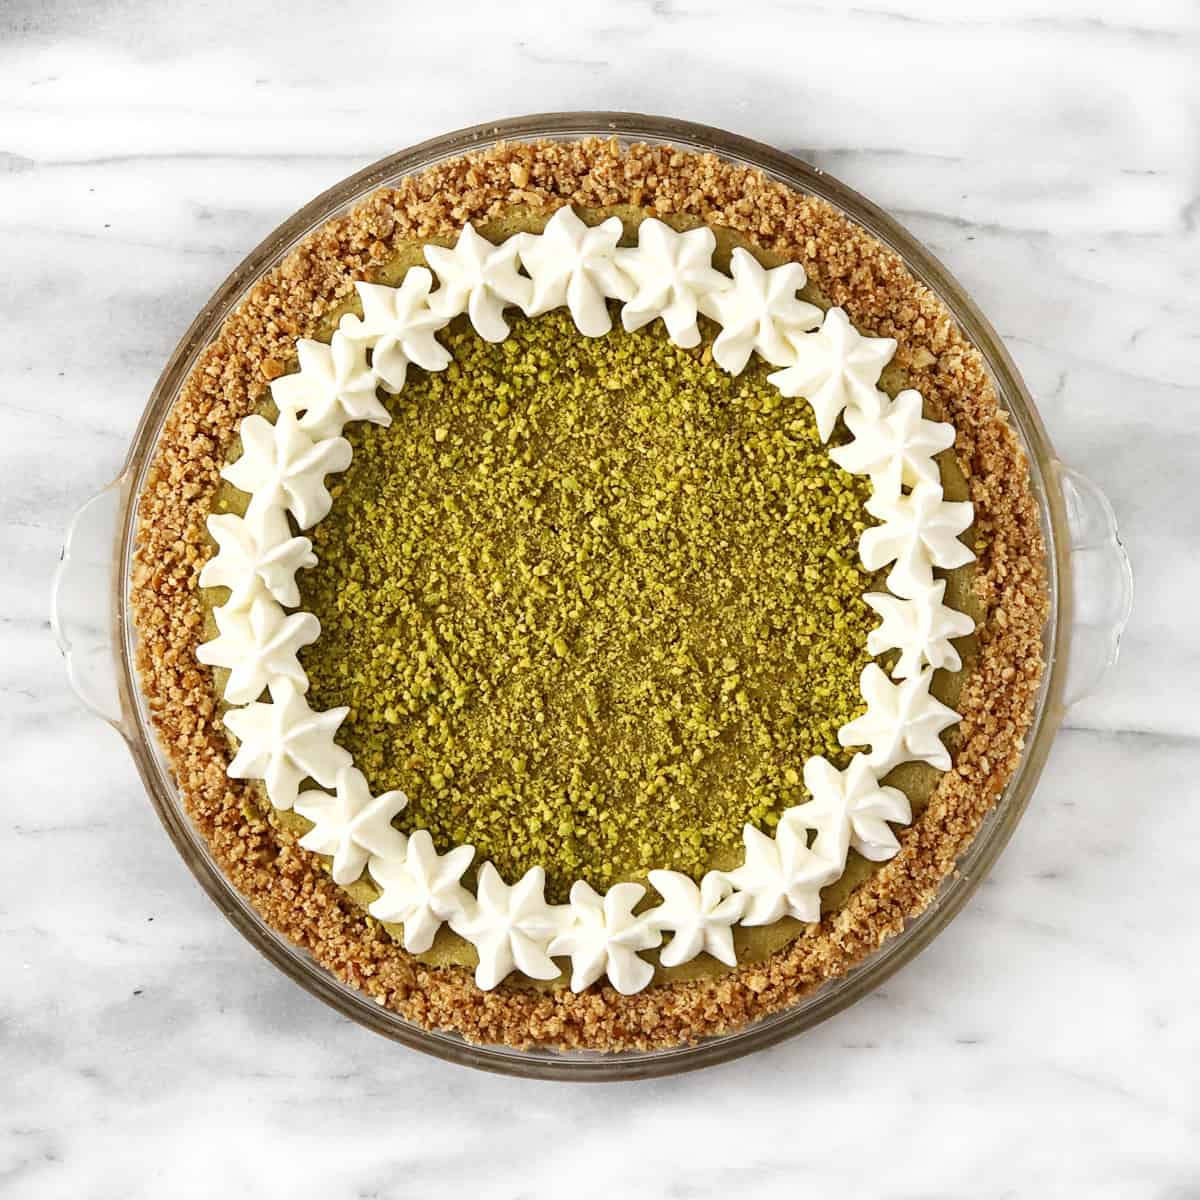 decorated pie with pistachios and whipped cream